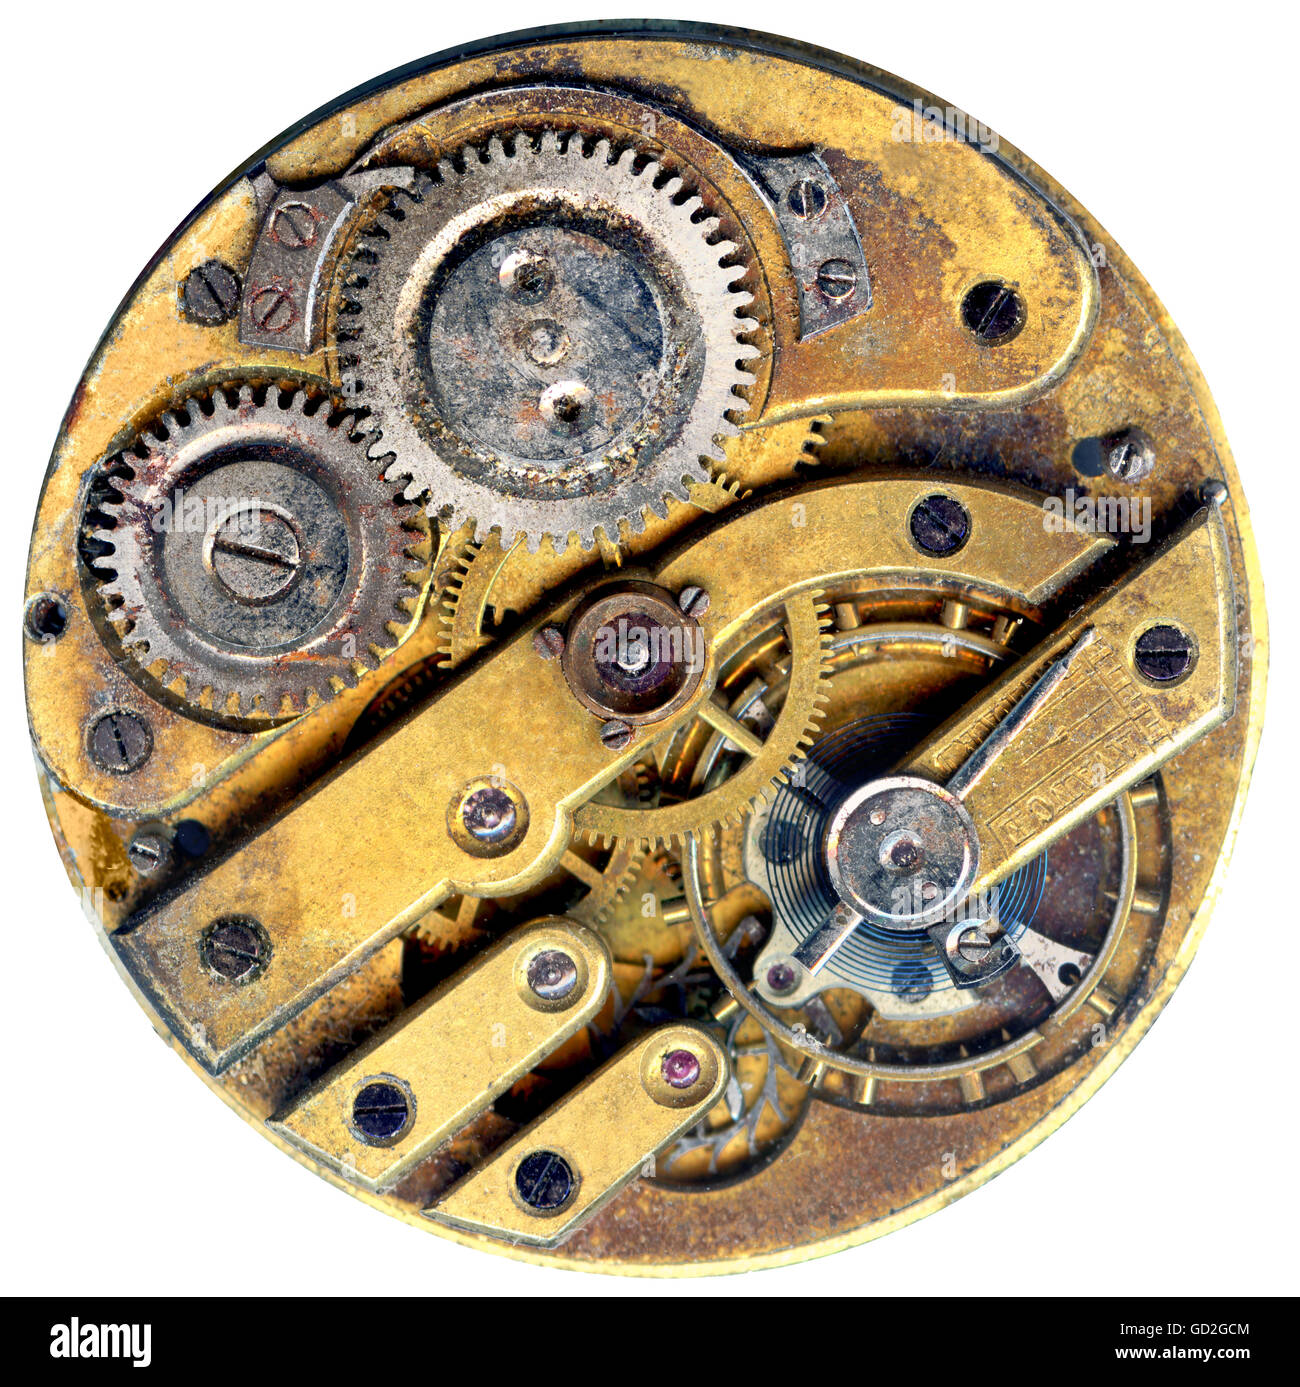 clock, clockwork of a pocket watch, made by unknown, France, circa 1900, Additional-Rights-Clearences-NA - Stock Image